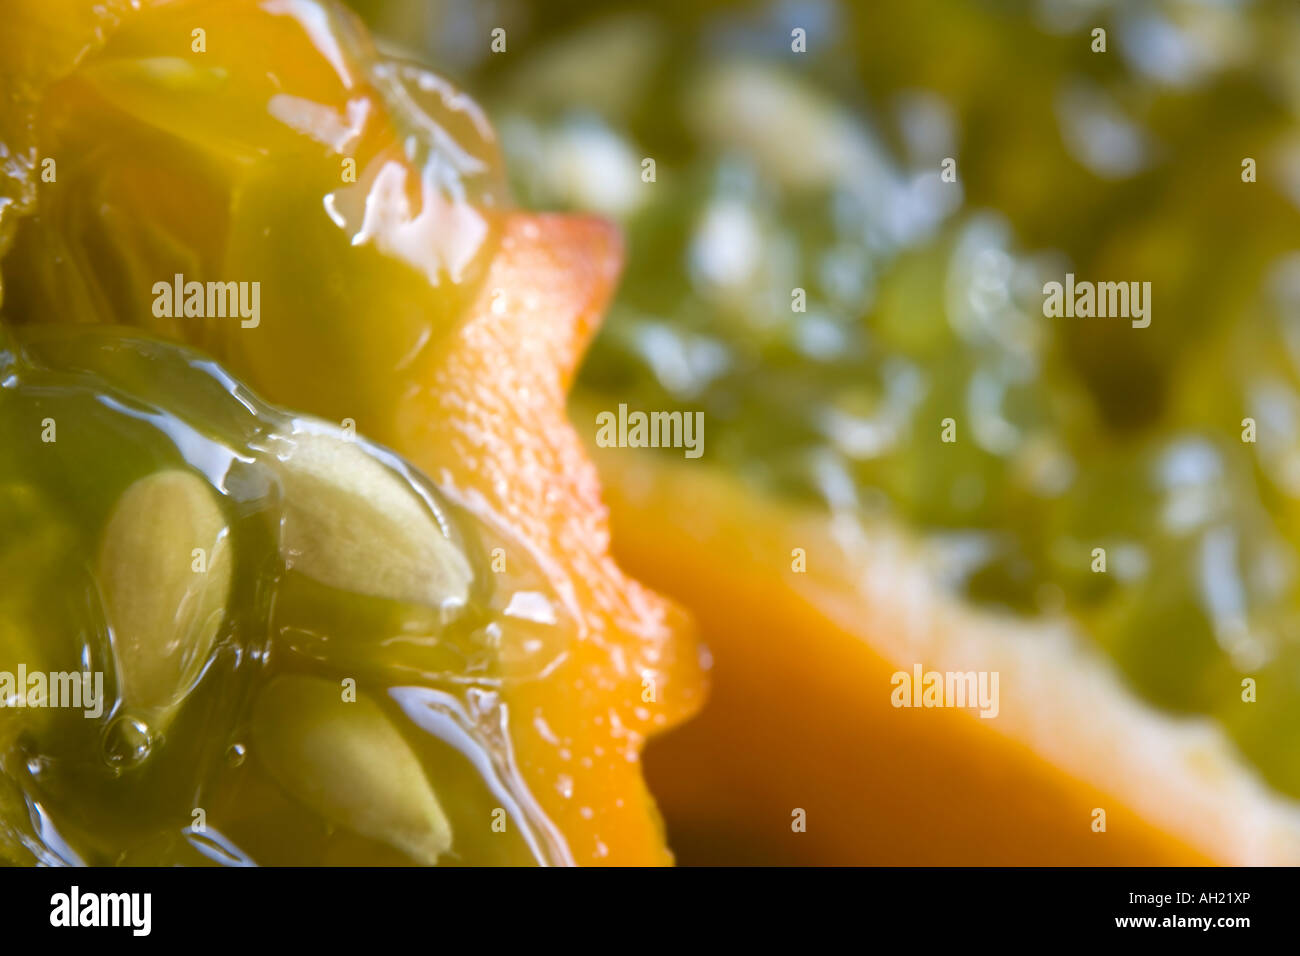 Macro shot of the inside of a horned melon - Stock Image